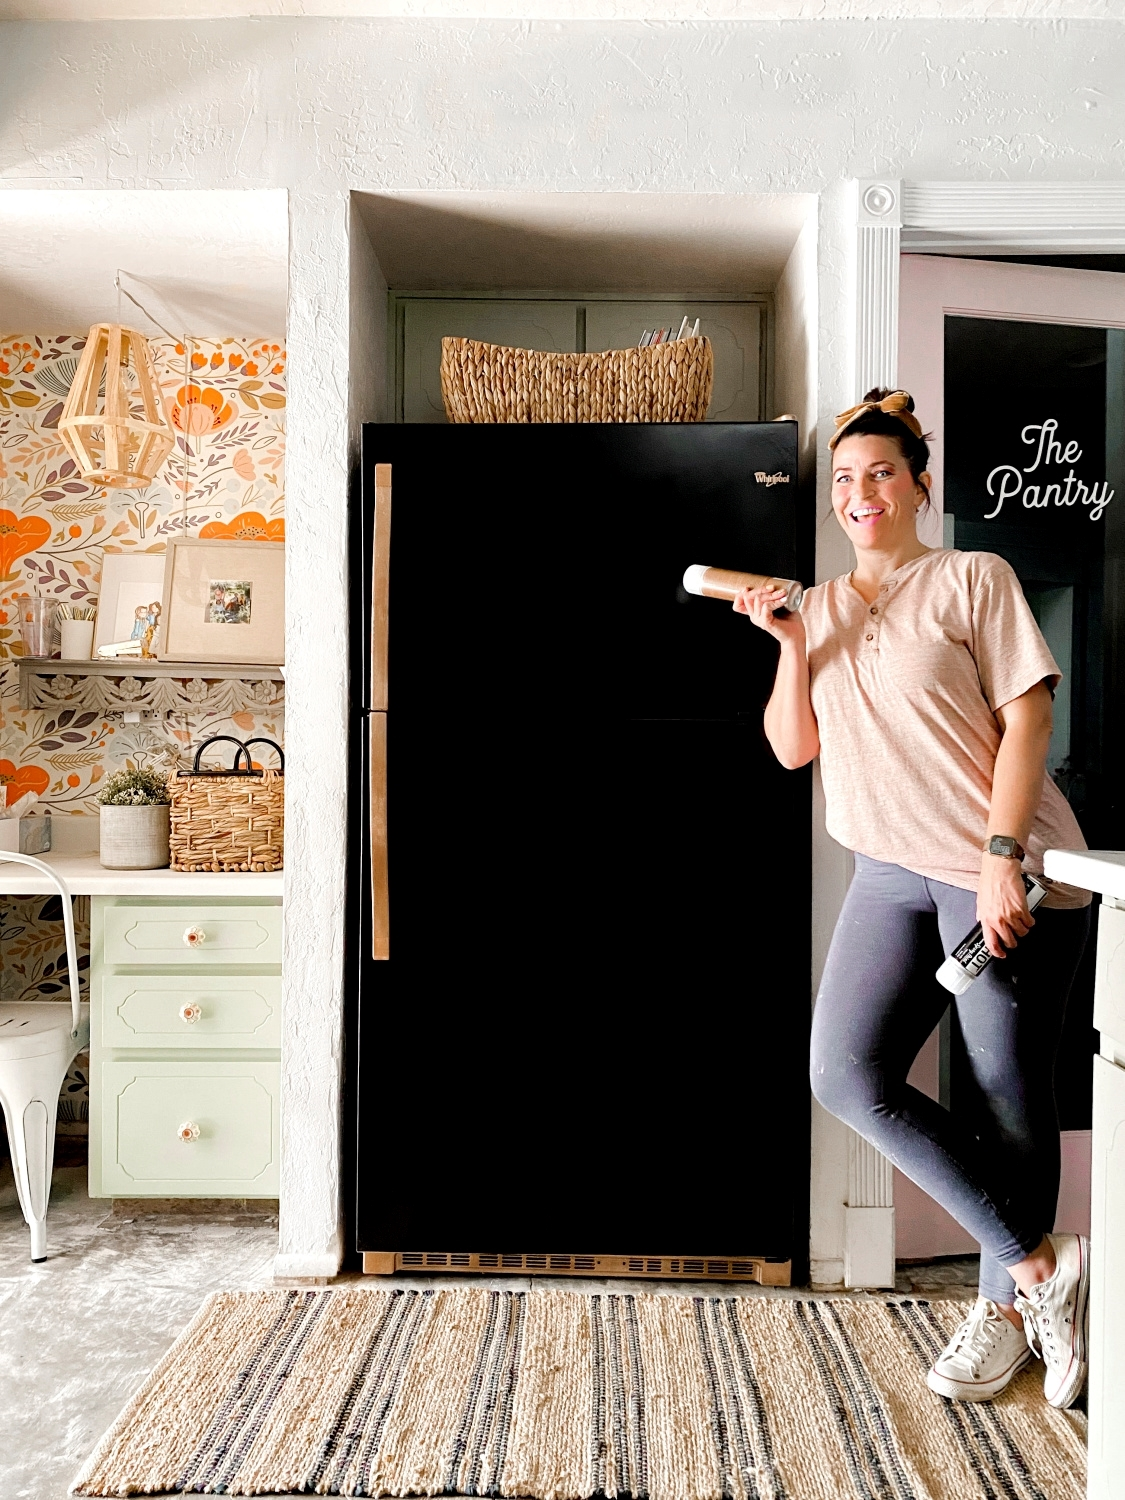 Make your fridge new again with spray paint